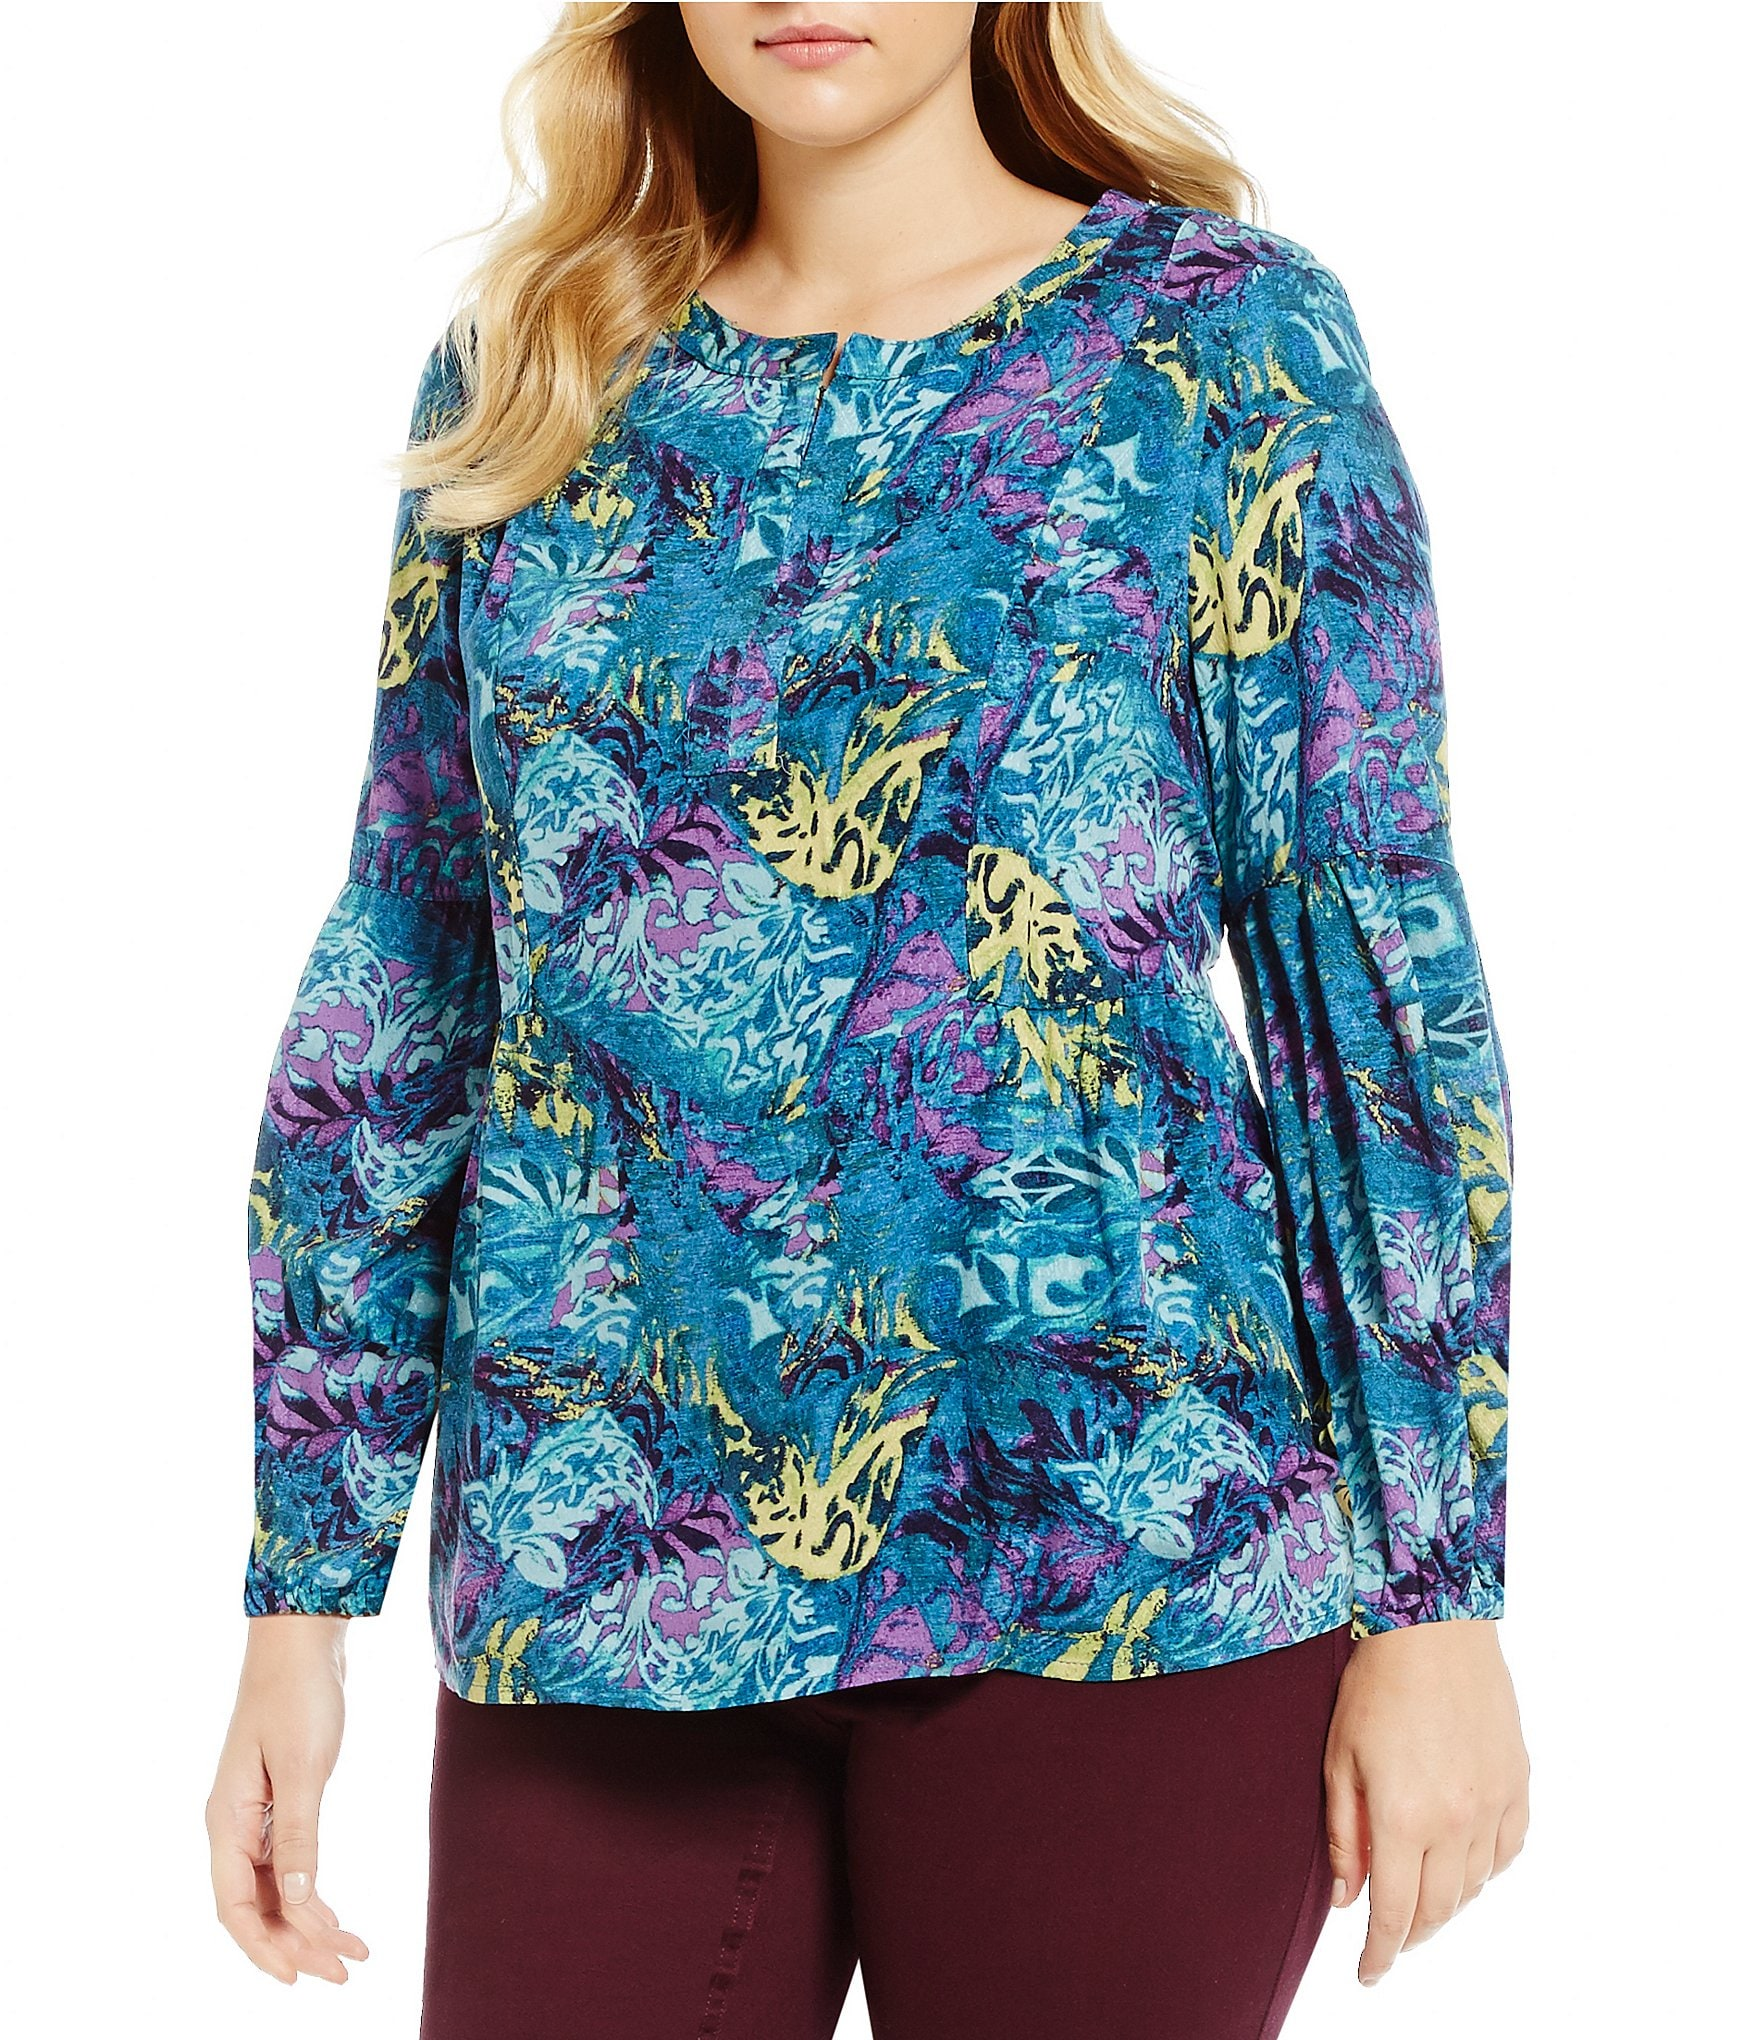 Bobeau clothing is chic, modern and luxuriously comfortable for women. You'll look and feel great in Bobeau's shirts, sweaters, pants and more! Free Shipping on $75+ Orders.